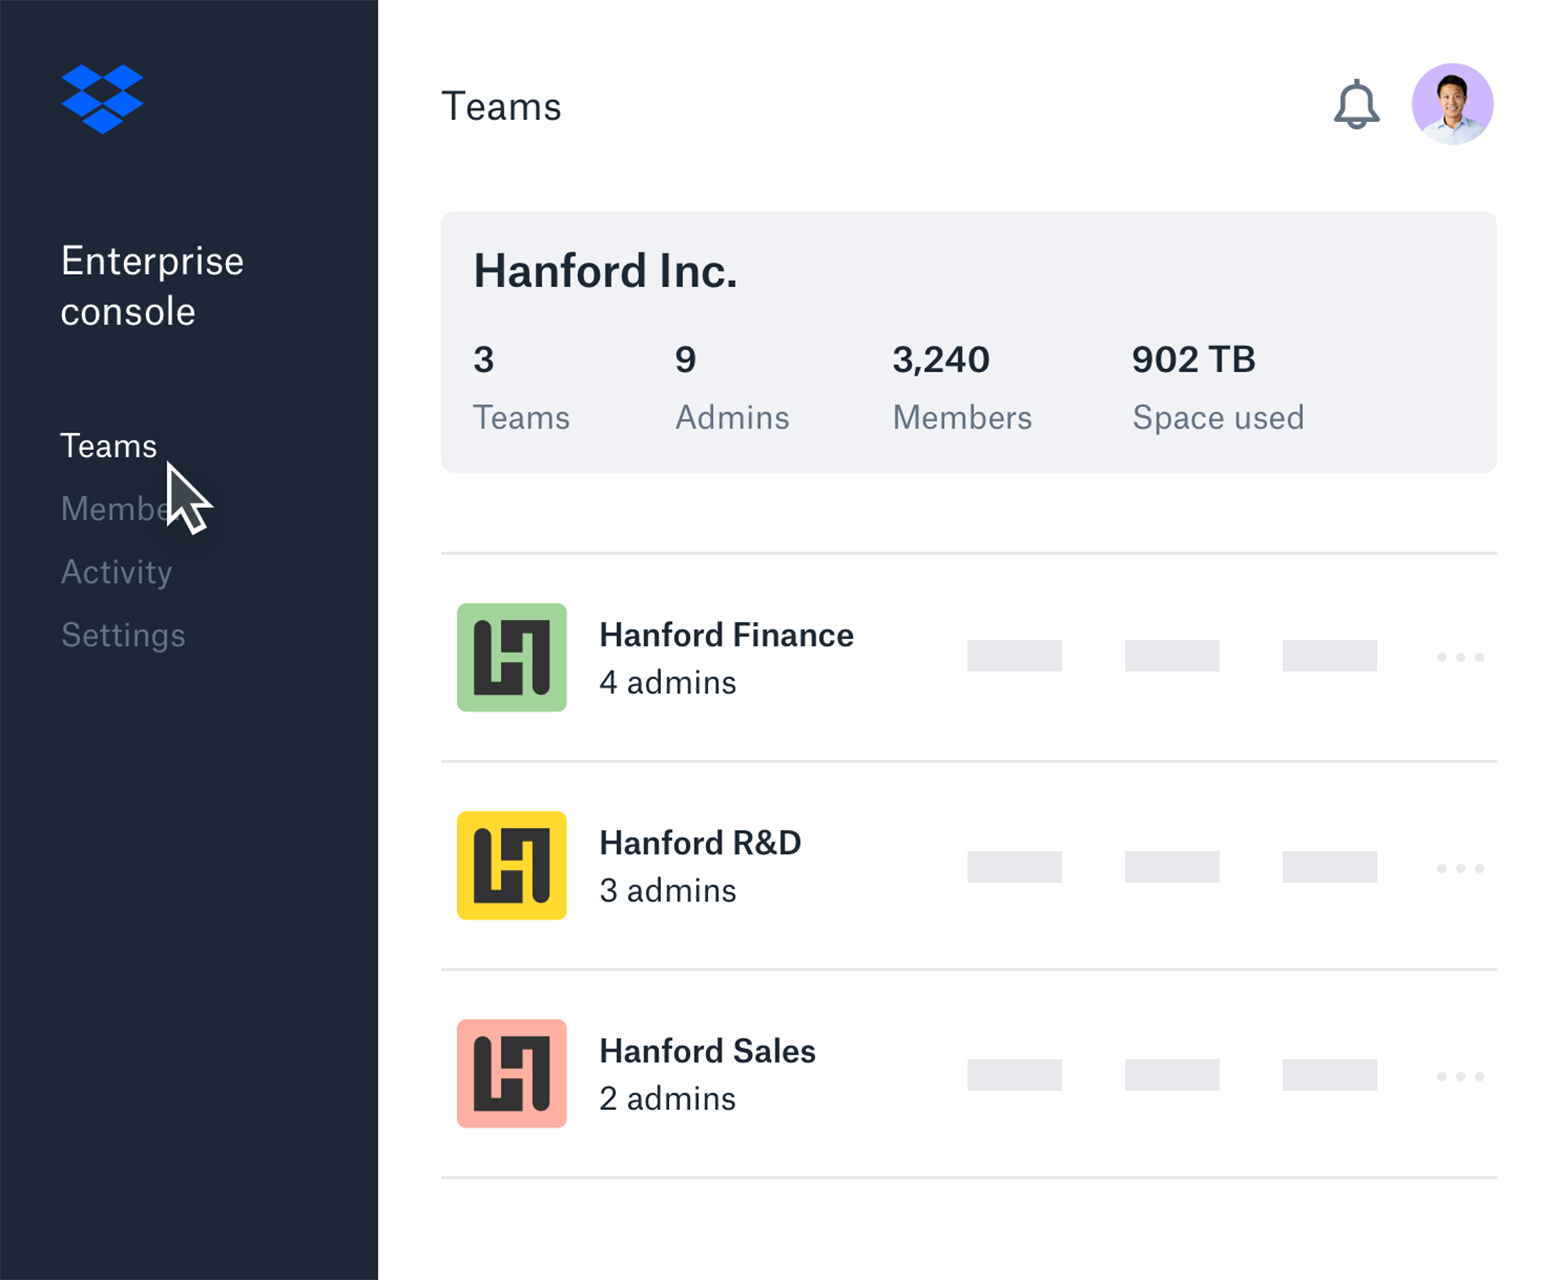 Example Dropbox enterprise console interface with a list of sub teams and a team member overview.